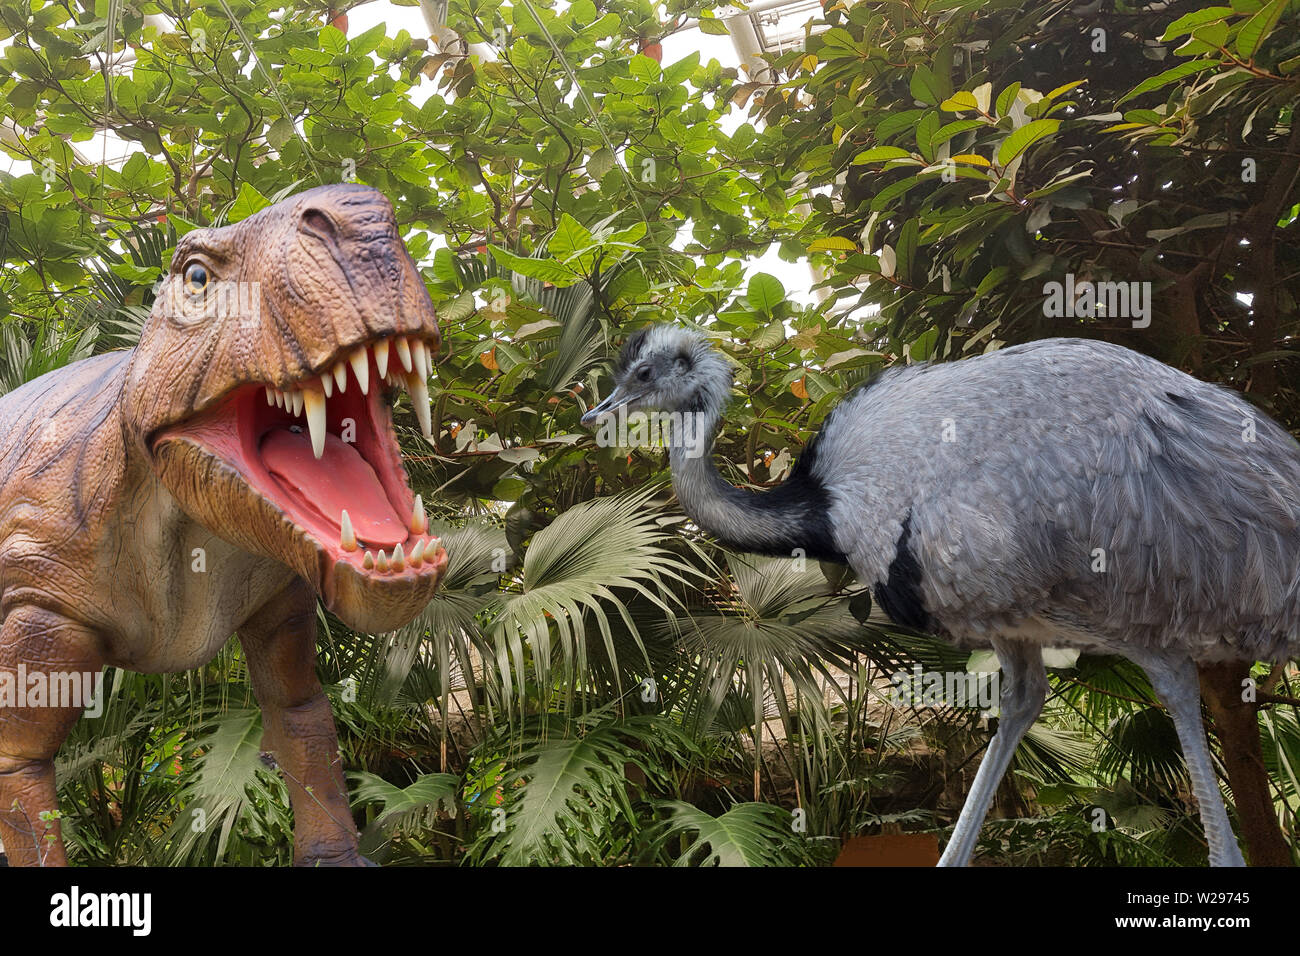 Big Black Ostrich And A Dinosaur Close Up Against The Backdrop Of A Jungle Stock Photo Alamy